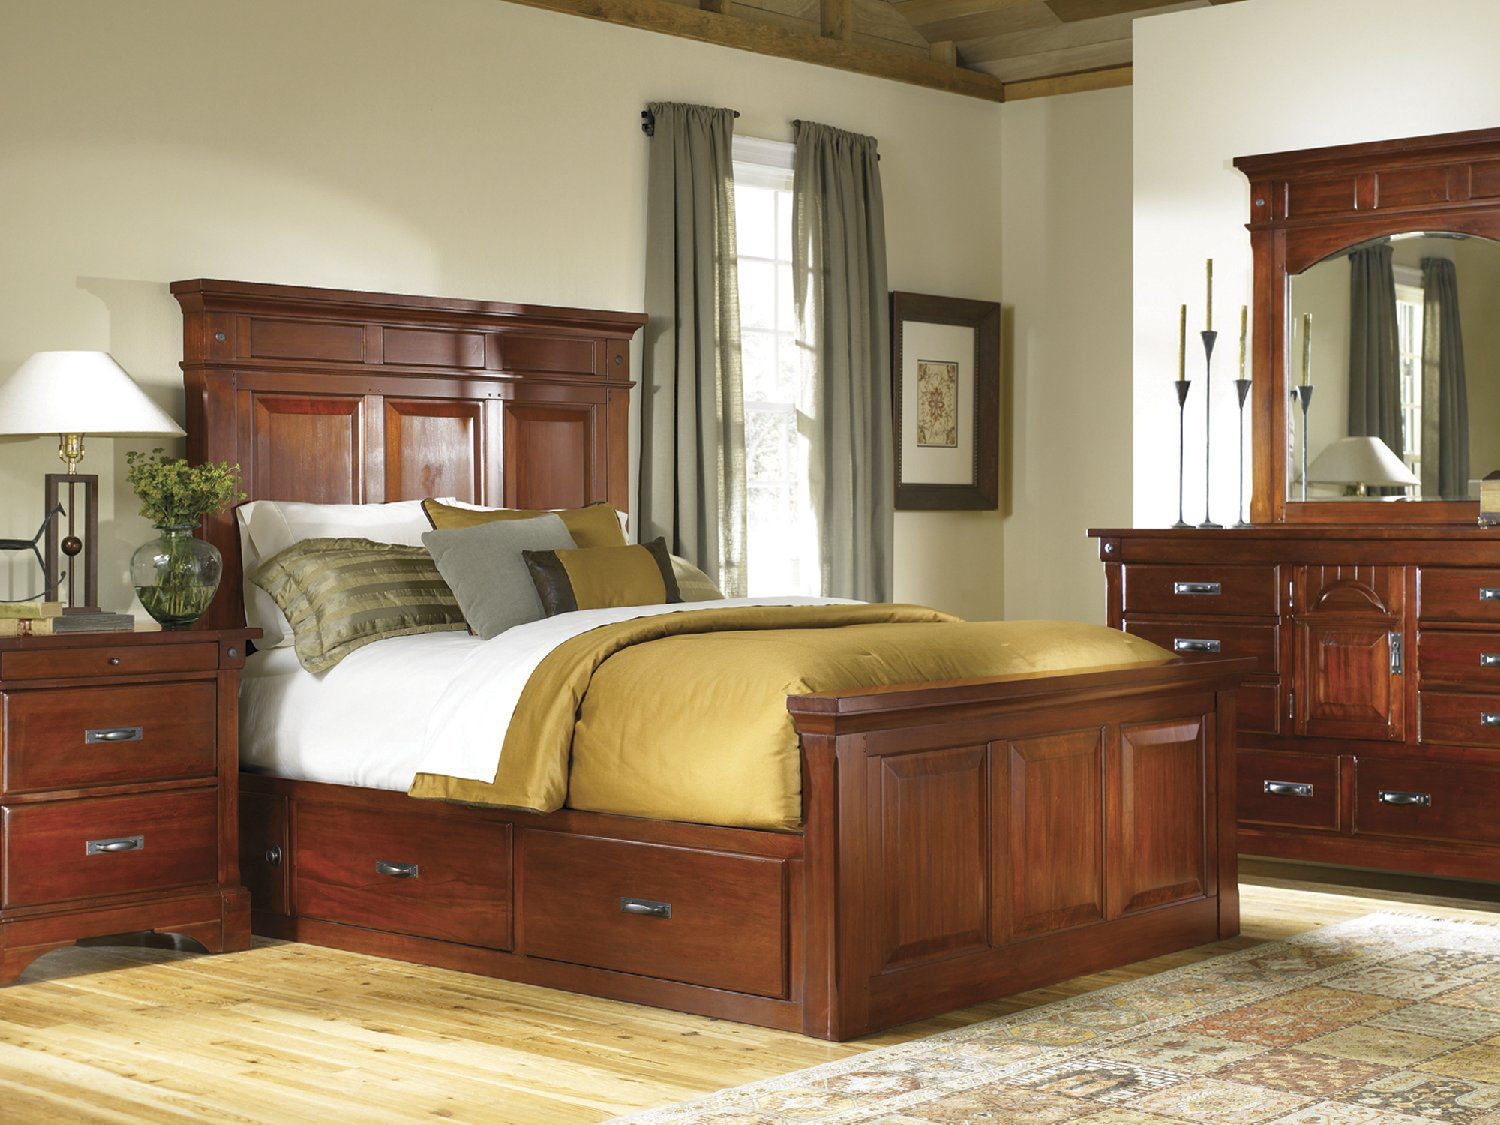 Kalispell Queen Mantel Bed With Under Bed Storage ...